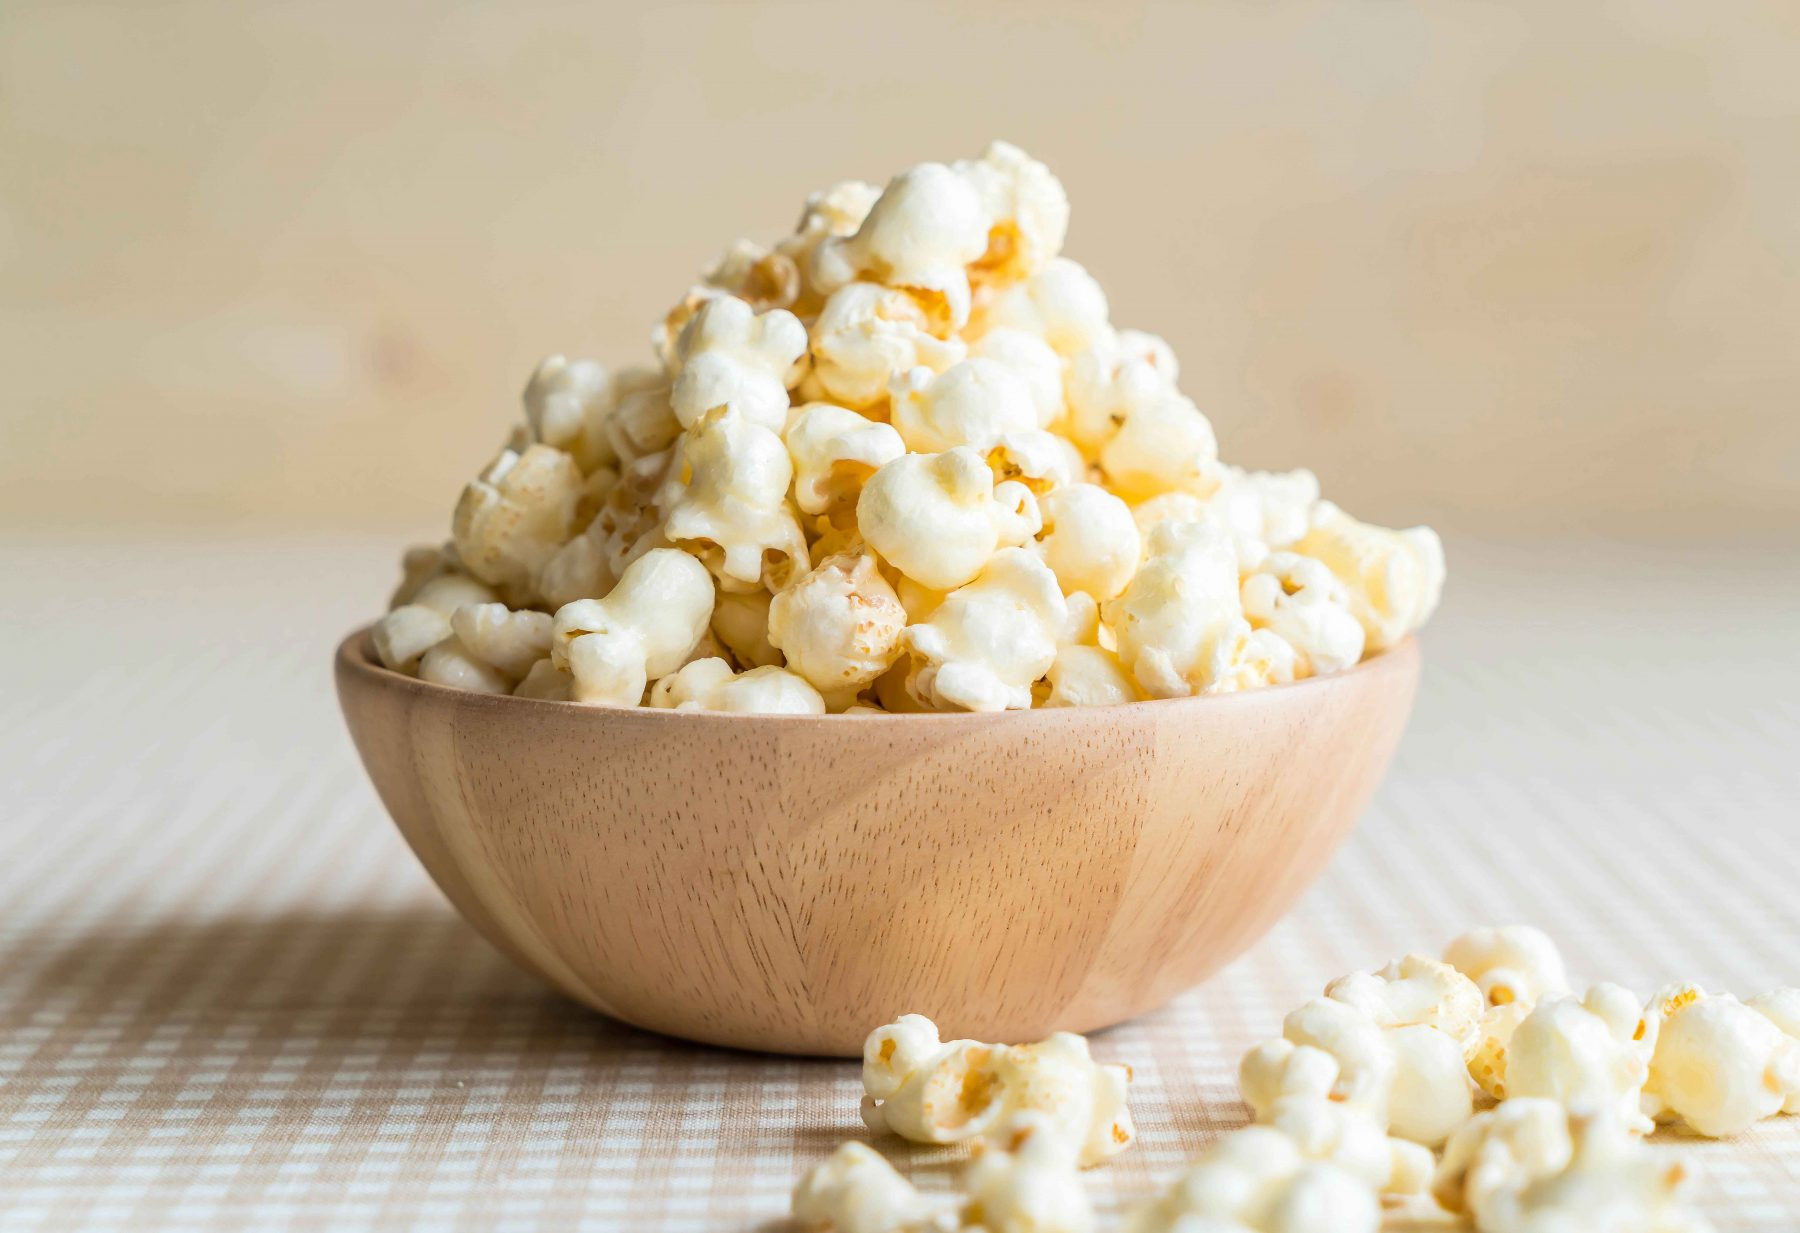 Low FODMAP Popcorn by Freepik